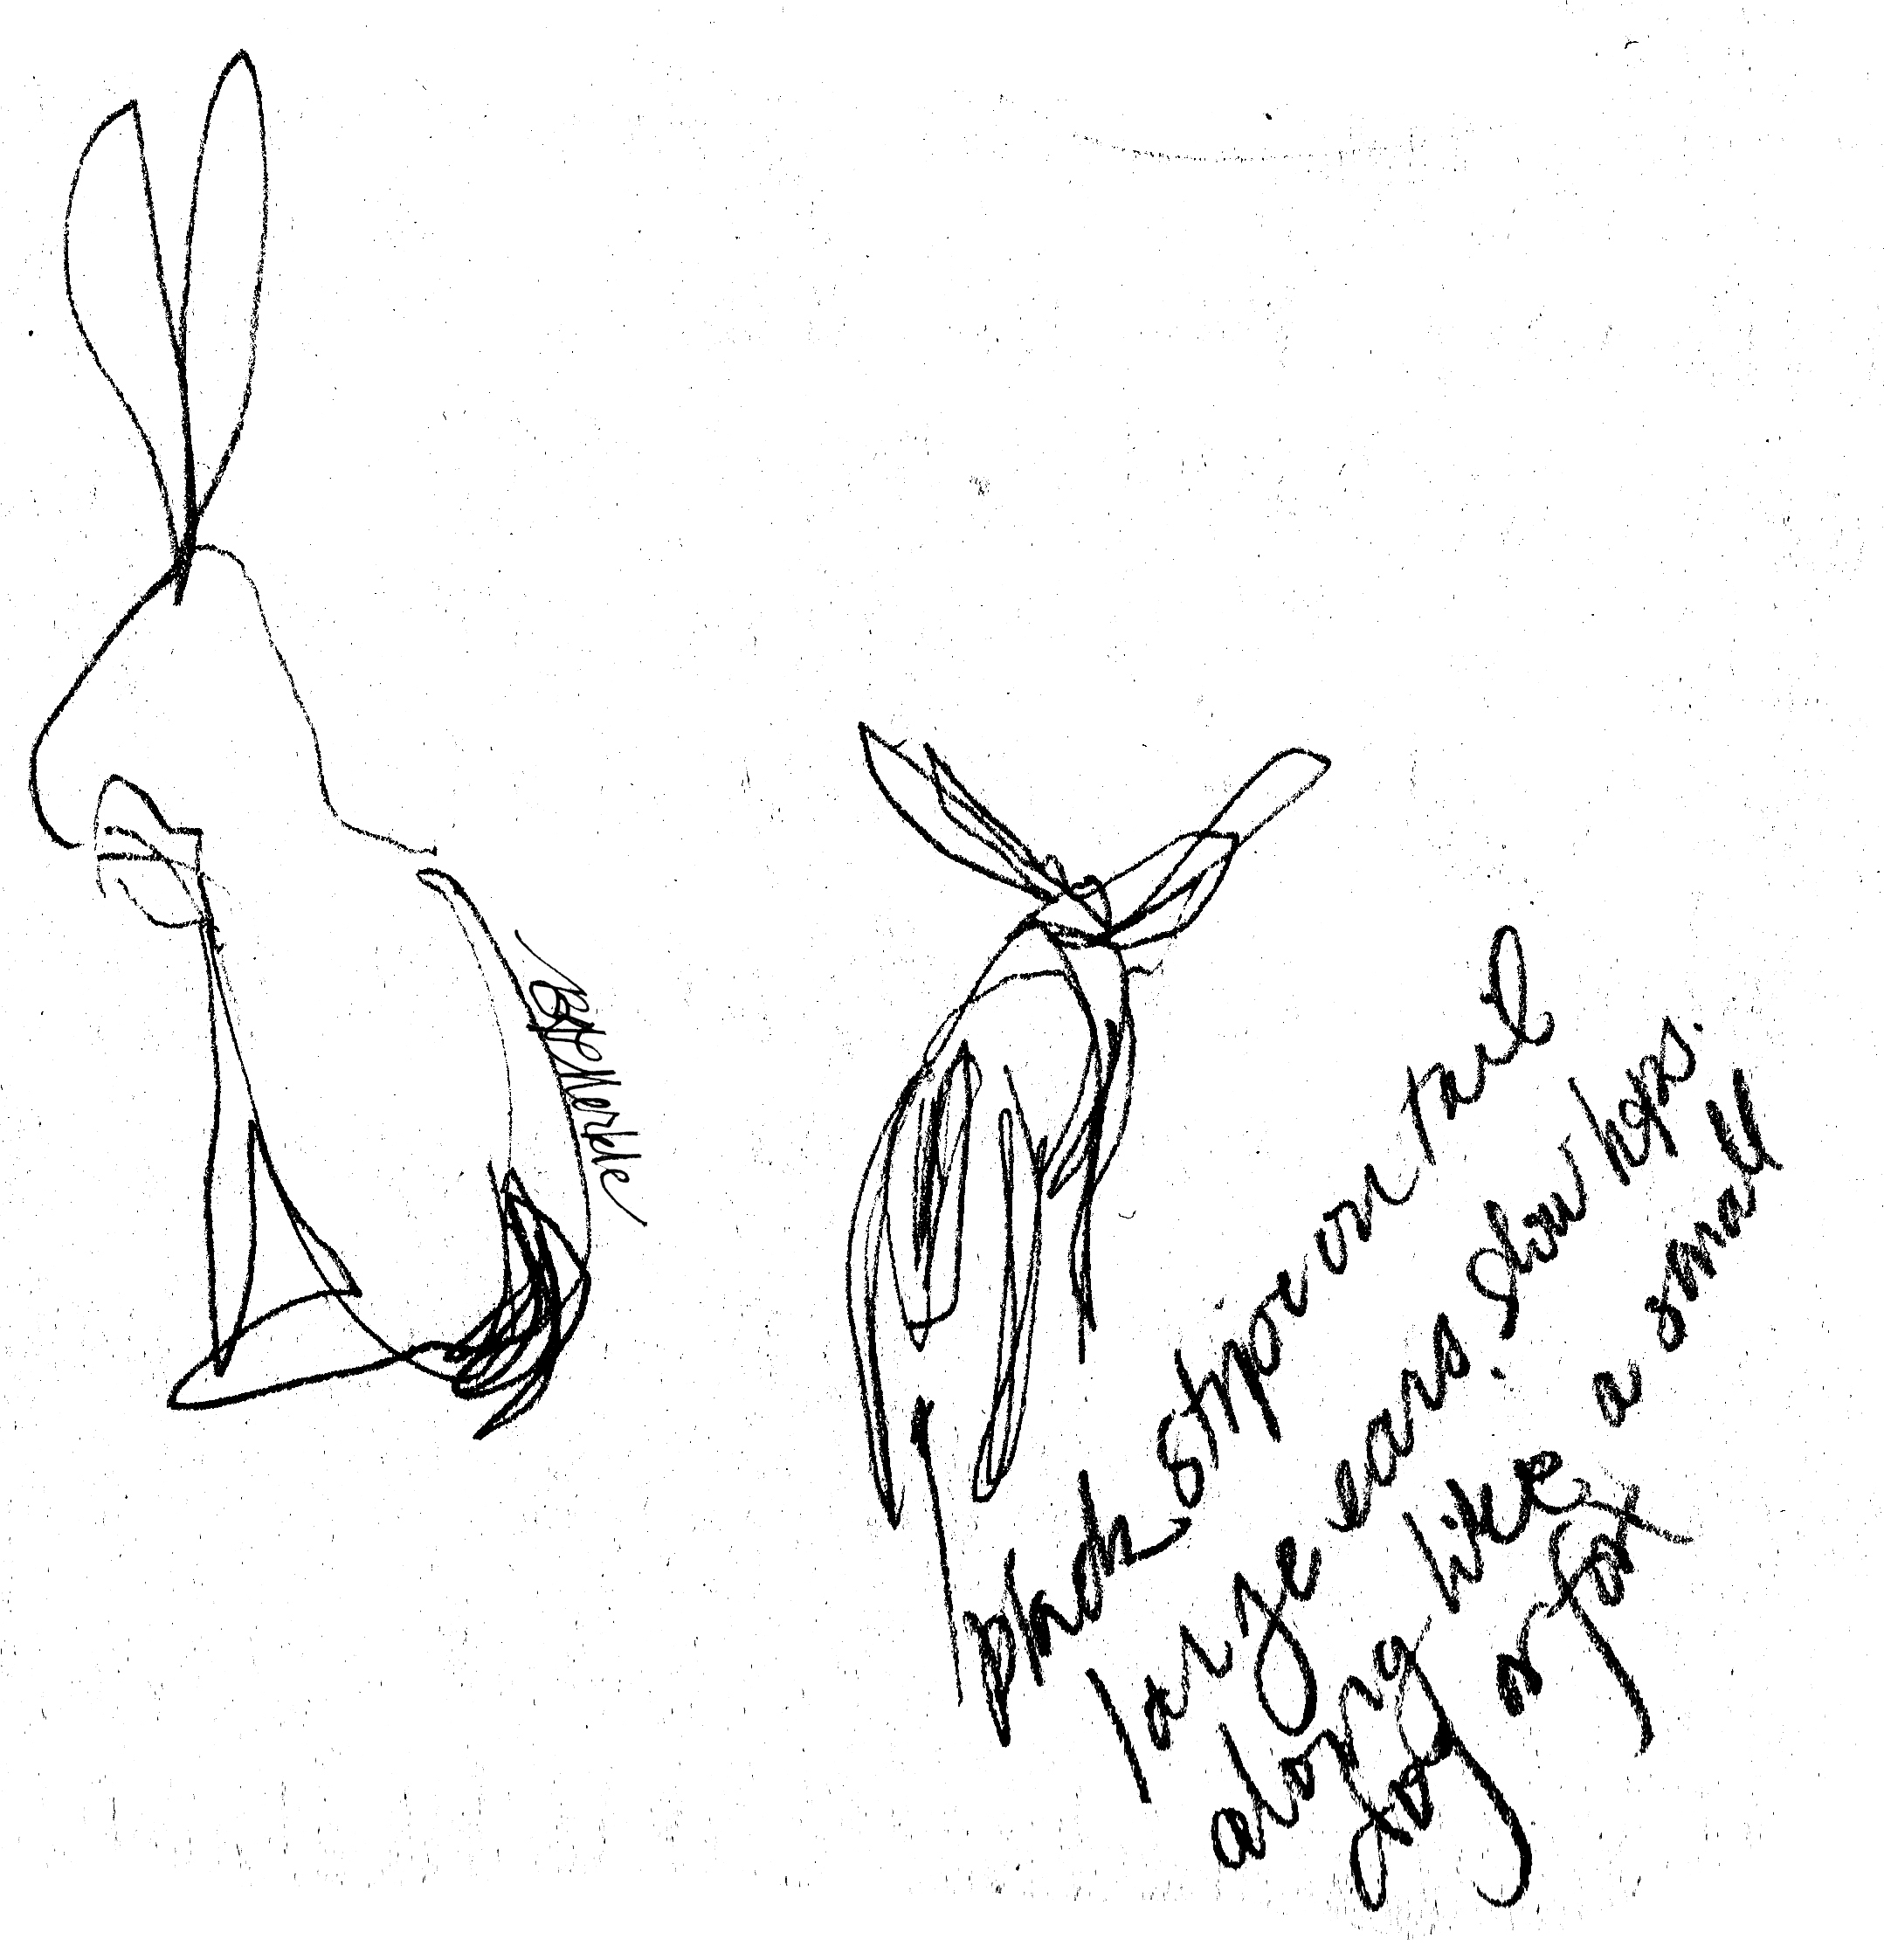 Illustration: hare sketches